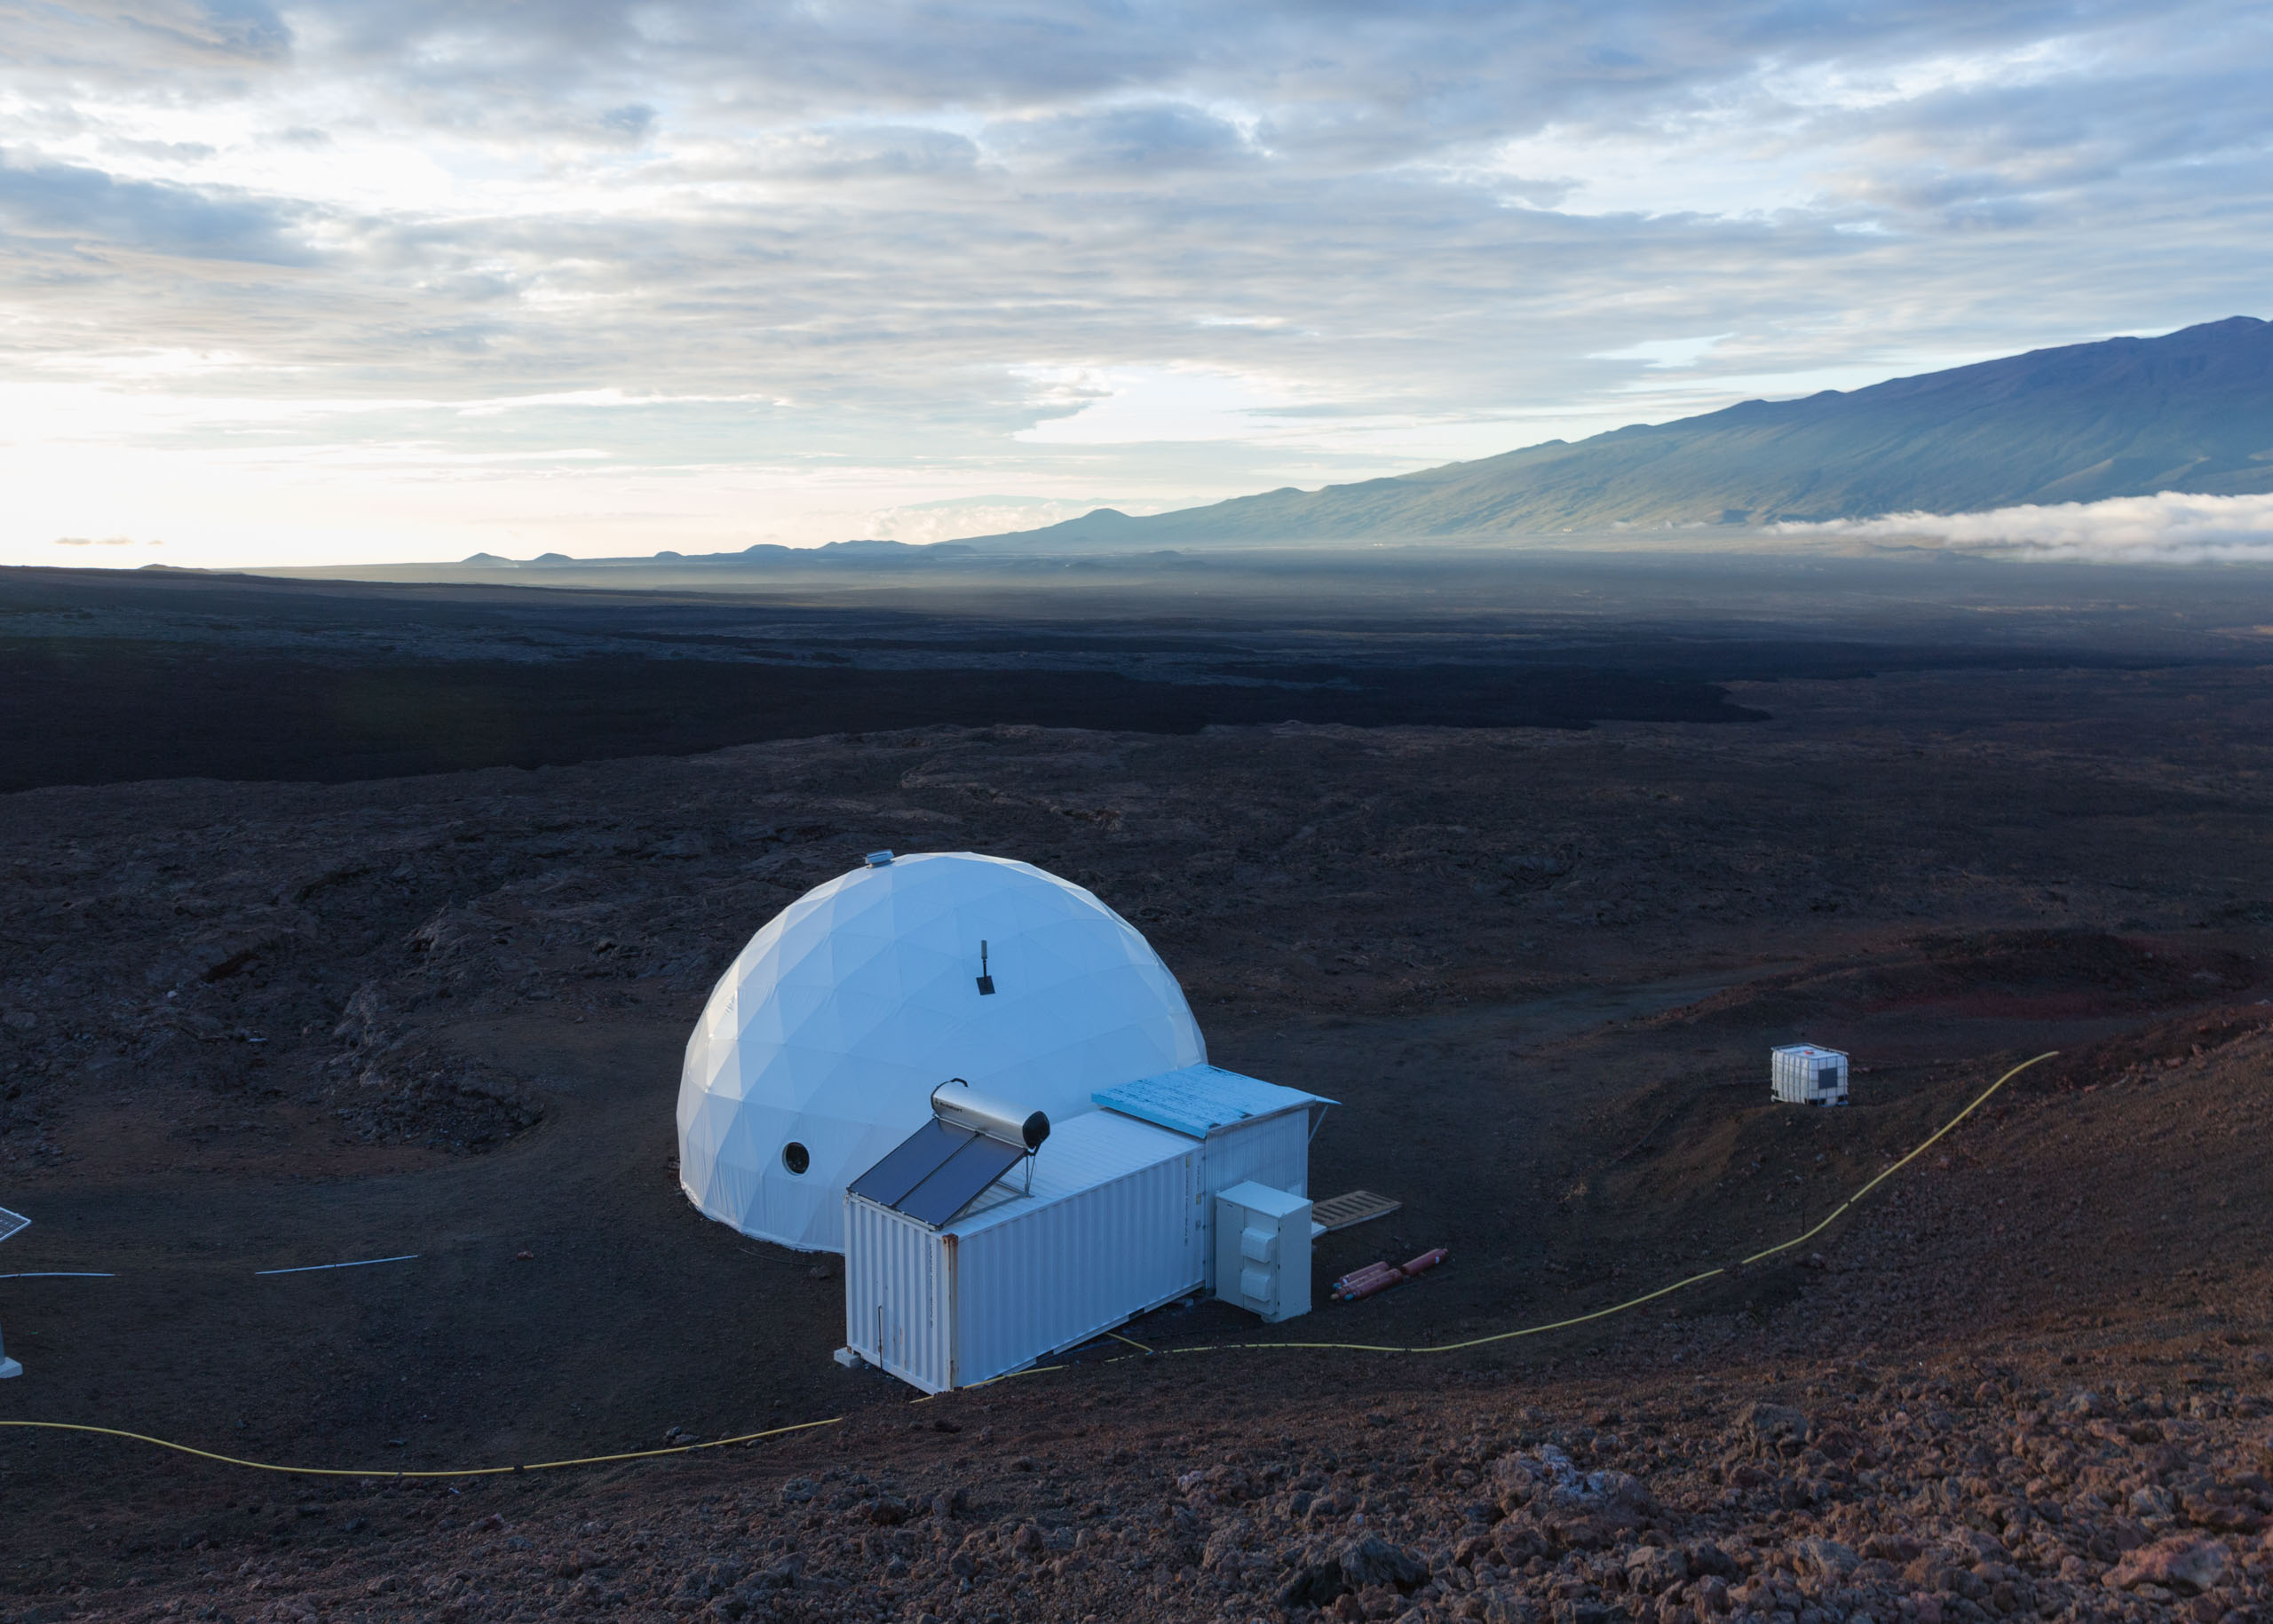 The HI-SEAS Mars simulation habitat on the Mauna Loa volcano in Hawaii.